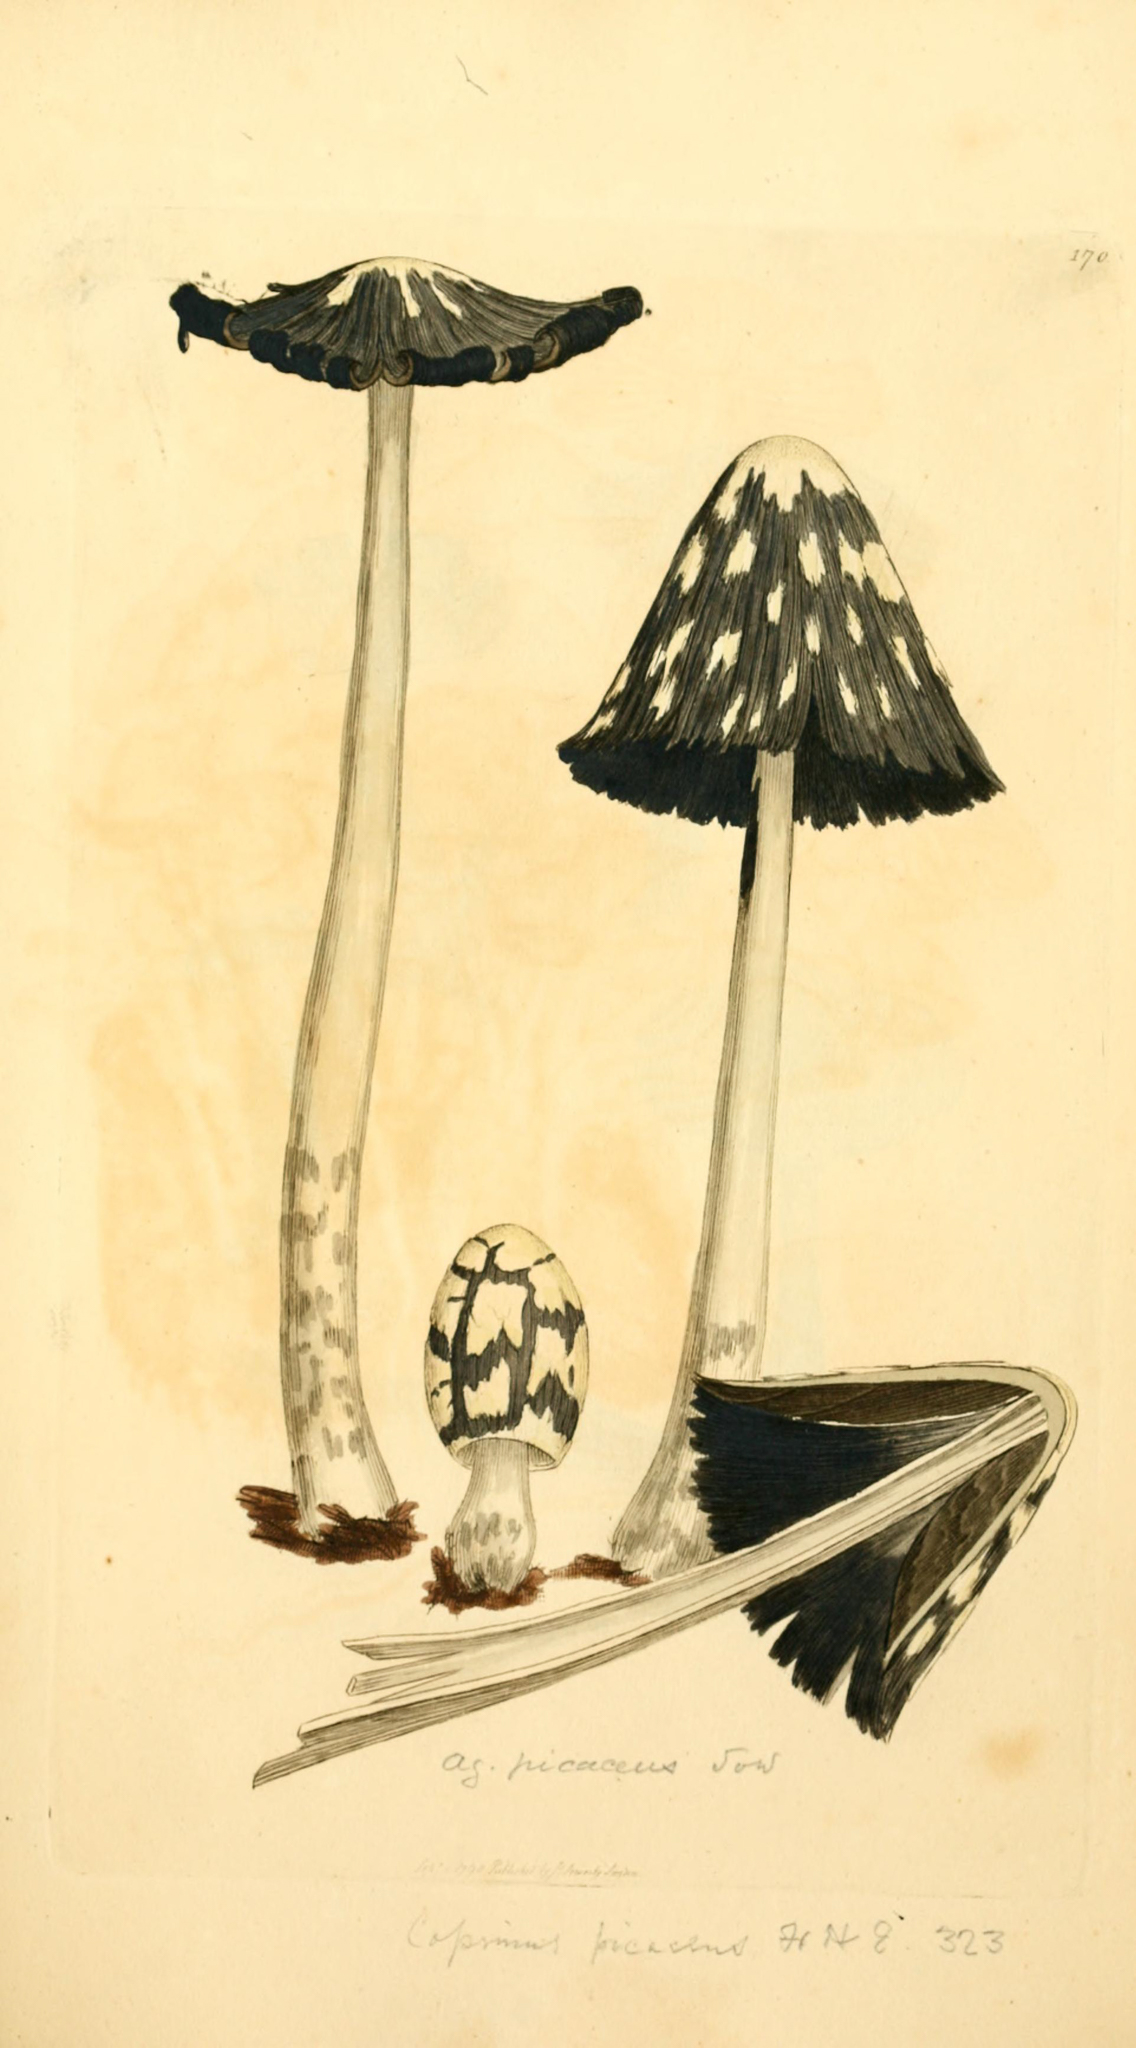 Coprinopsis picacea - The Hall of Einar